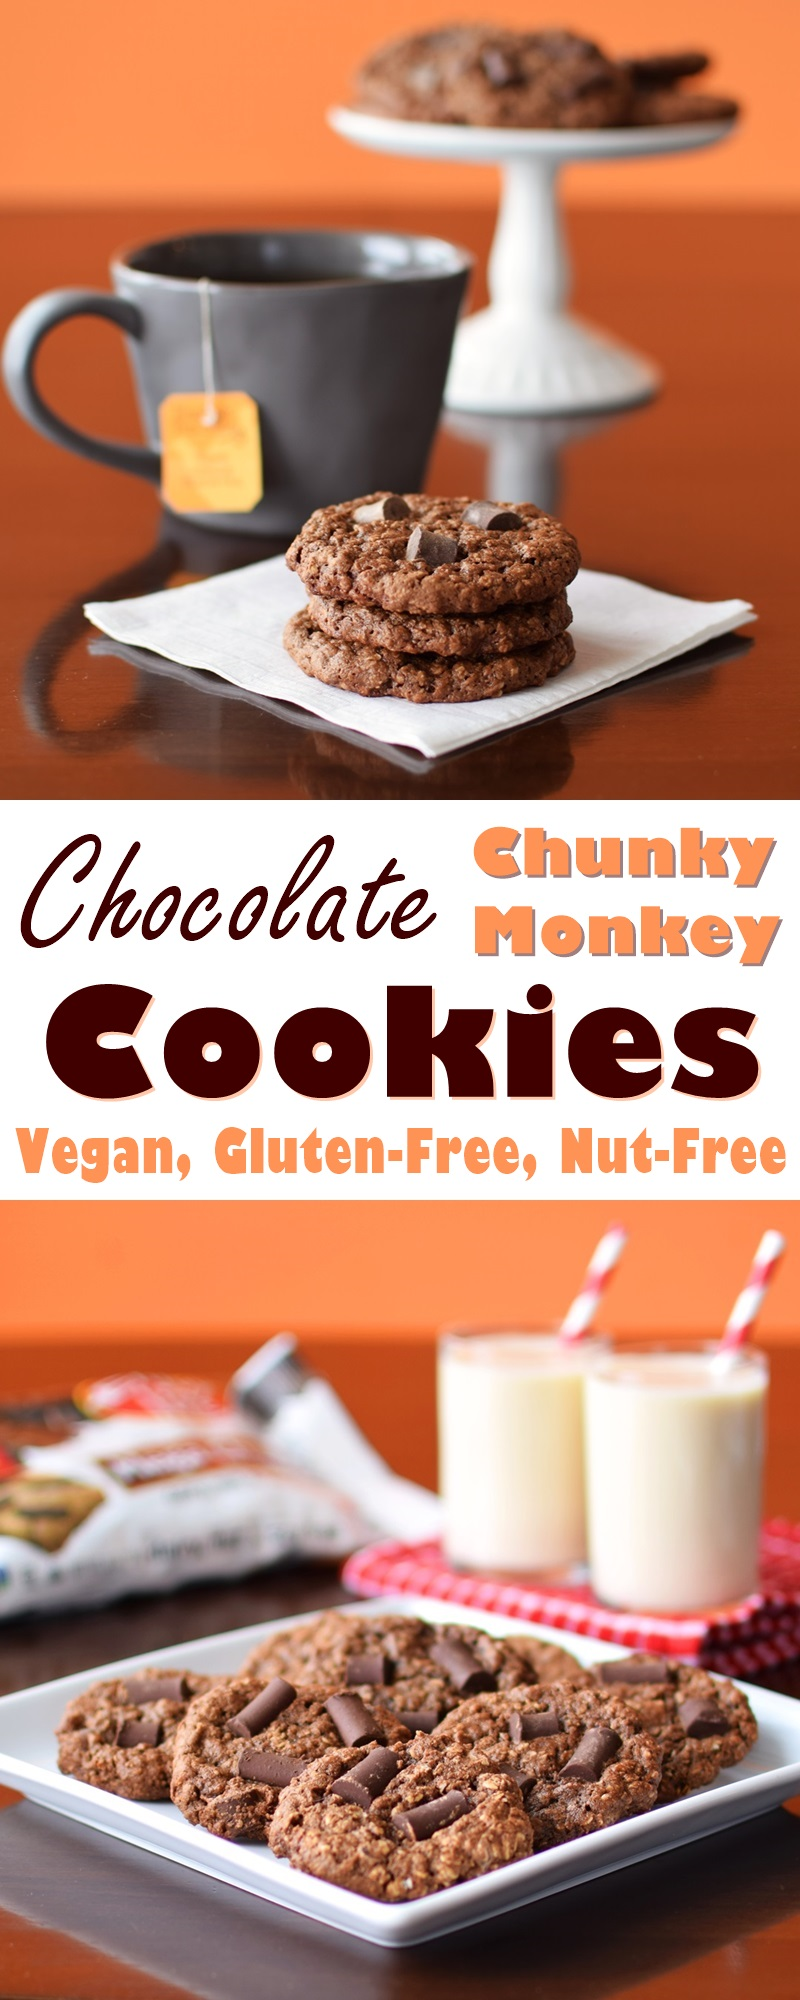 Chocolate Chunky Monkey Cookies Recipe - unbelievably easy, rich, and naturally vegan, gluten-free and allergy-friendly